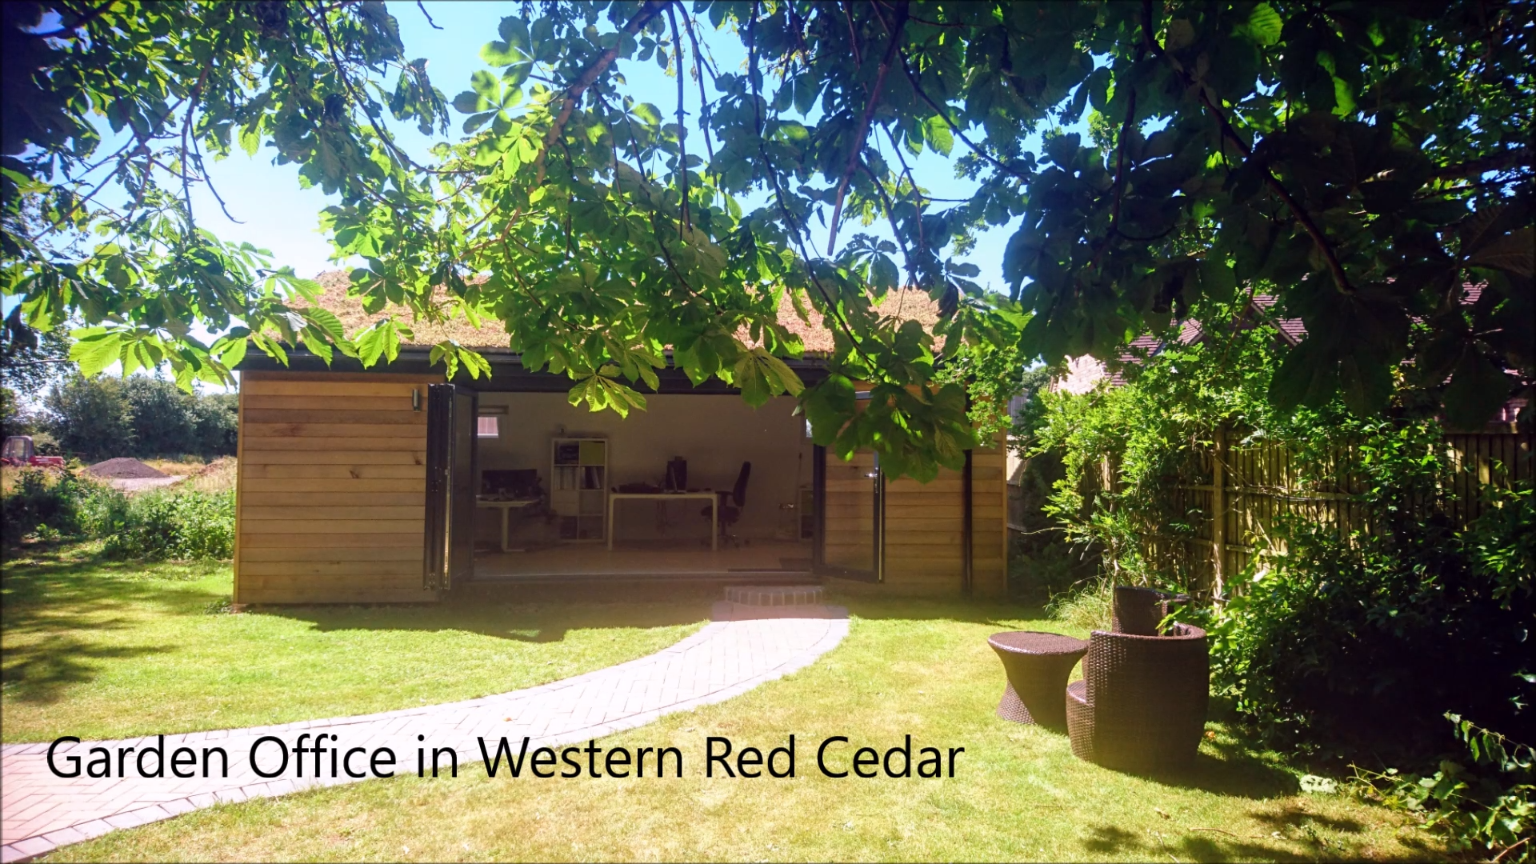 Western red cedar garden office with living sedums roof and